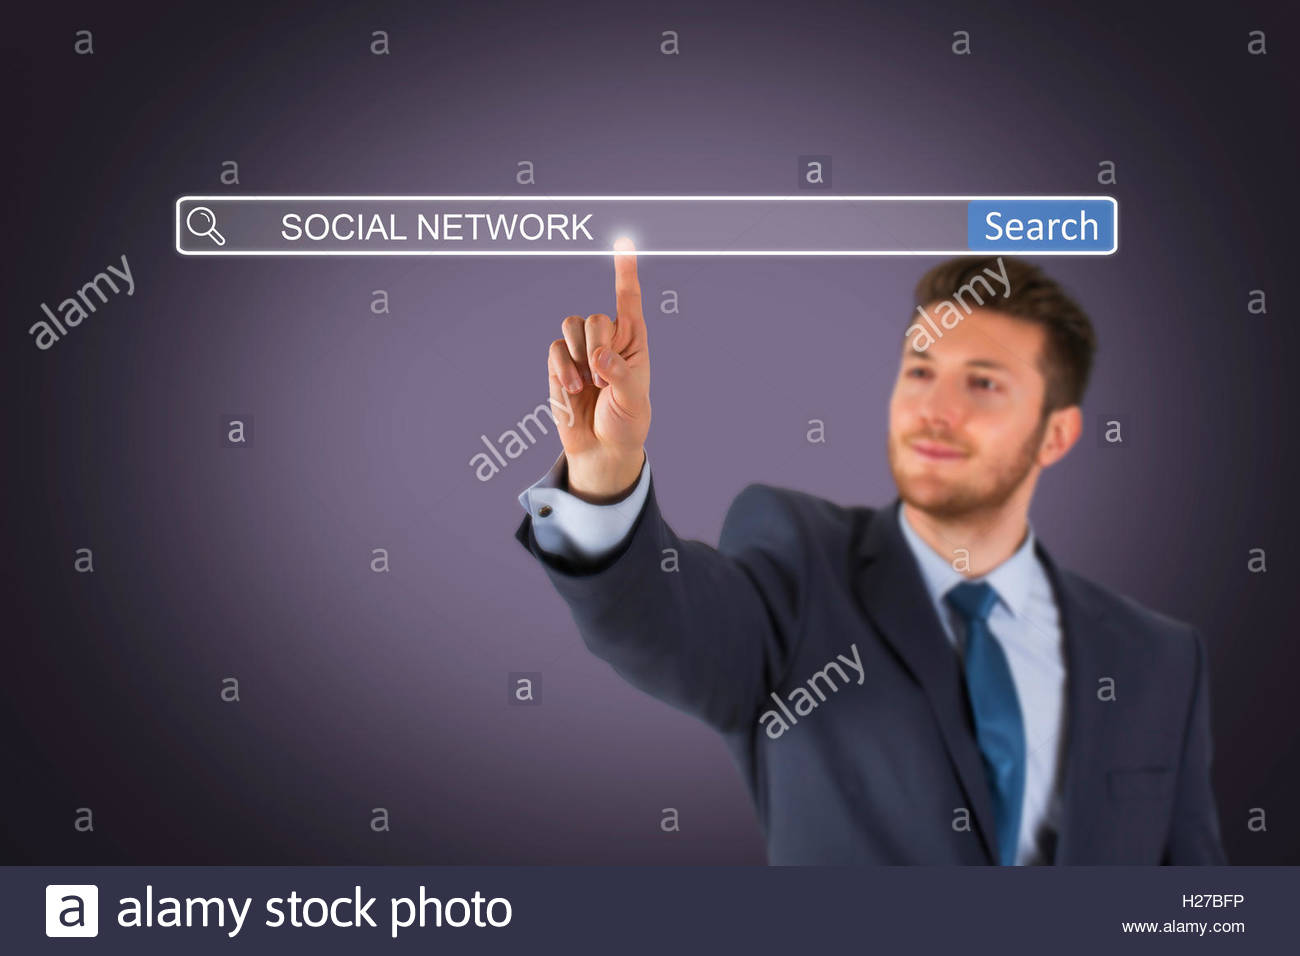 Social Network on Search Engine - Stock Image